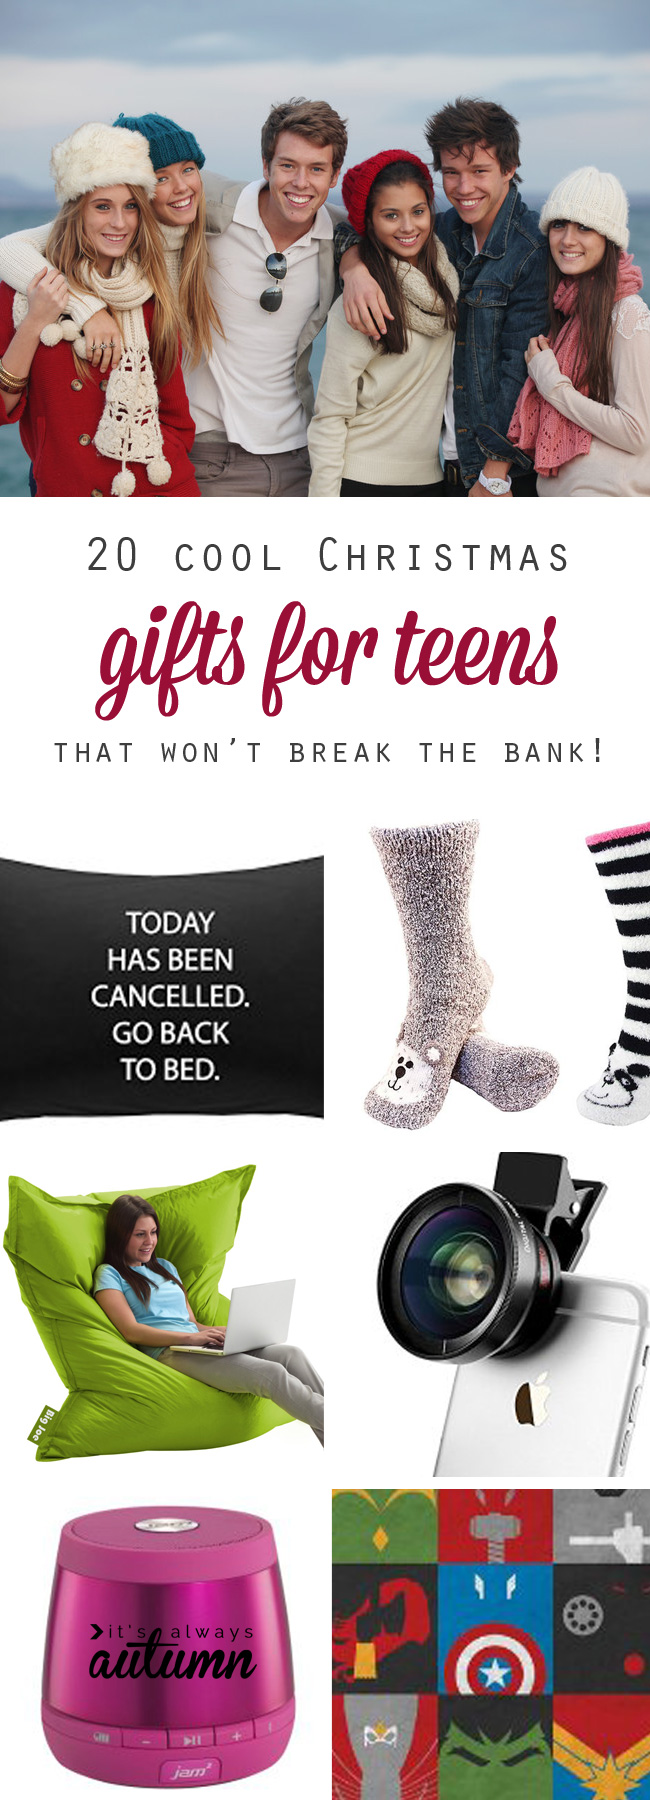 Download Christmas Ideas For Teens